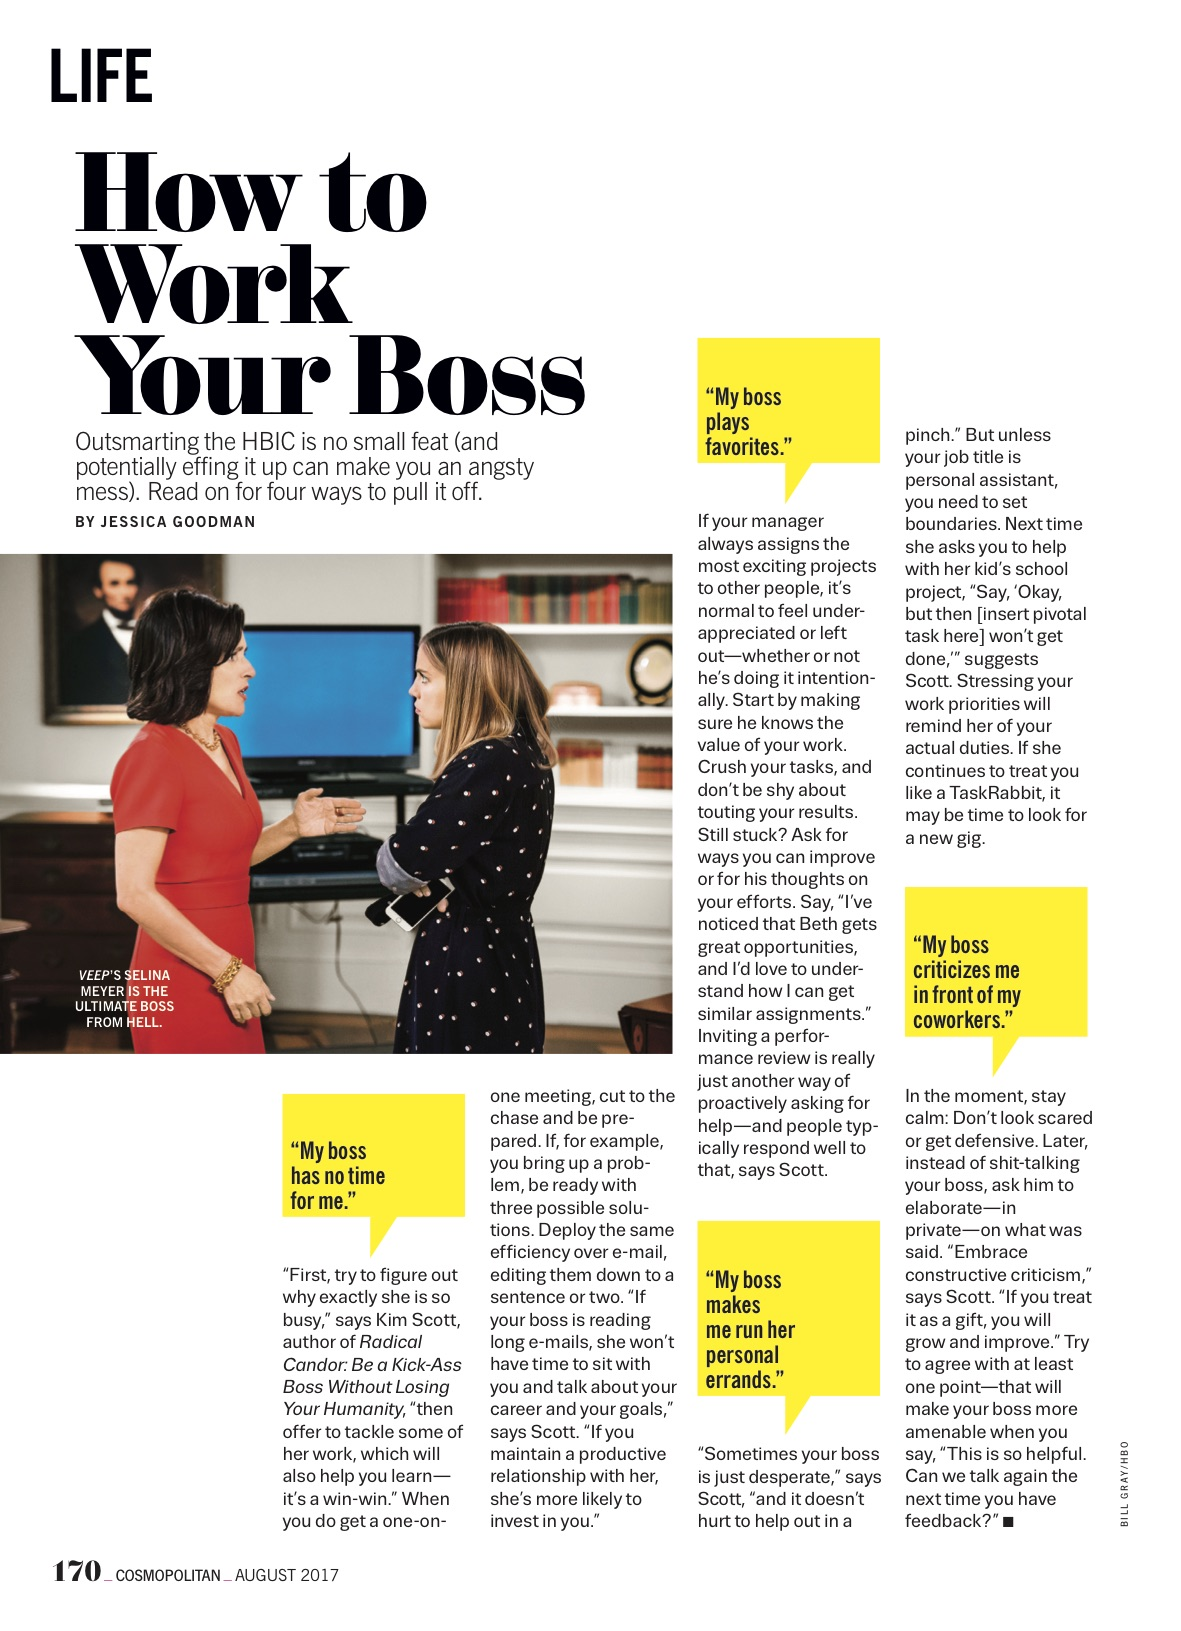 How to Work Your Boss